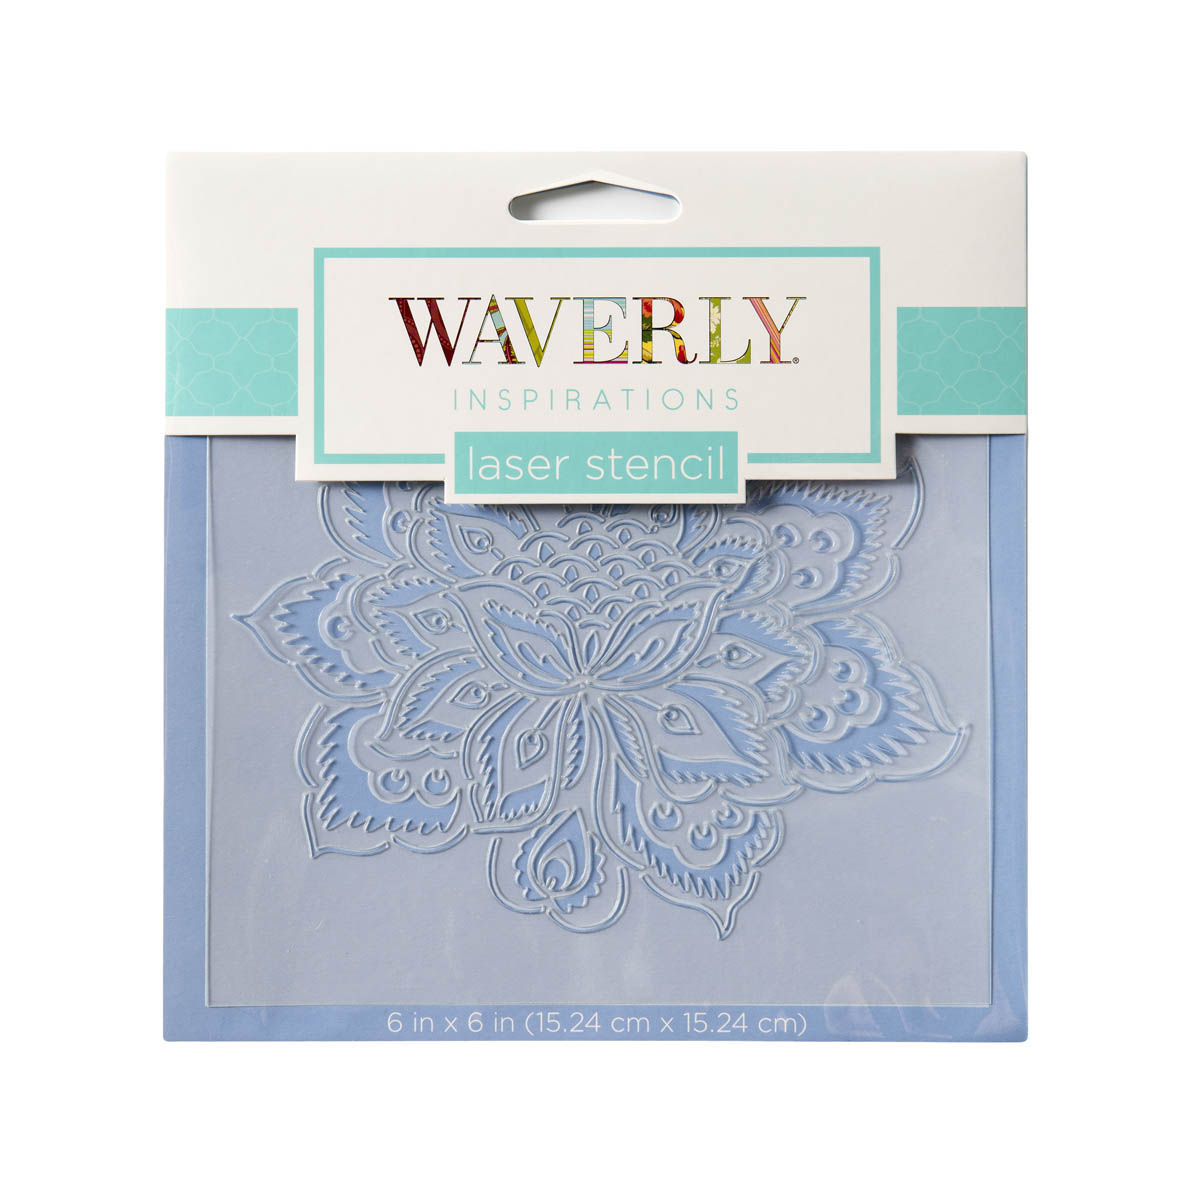 Waverly ® Inspirations Laser Stencils - Accent - Floral Ornate, 6